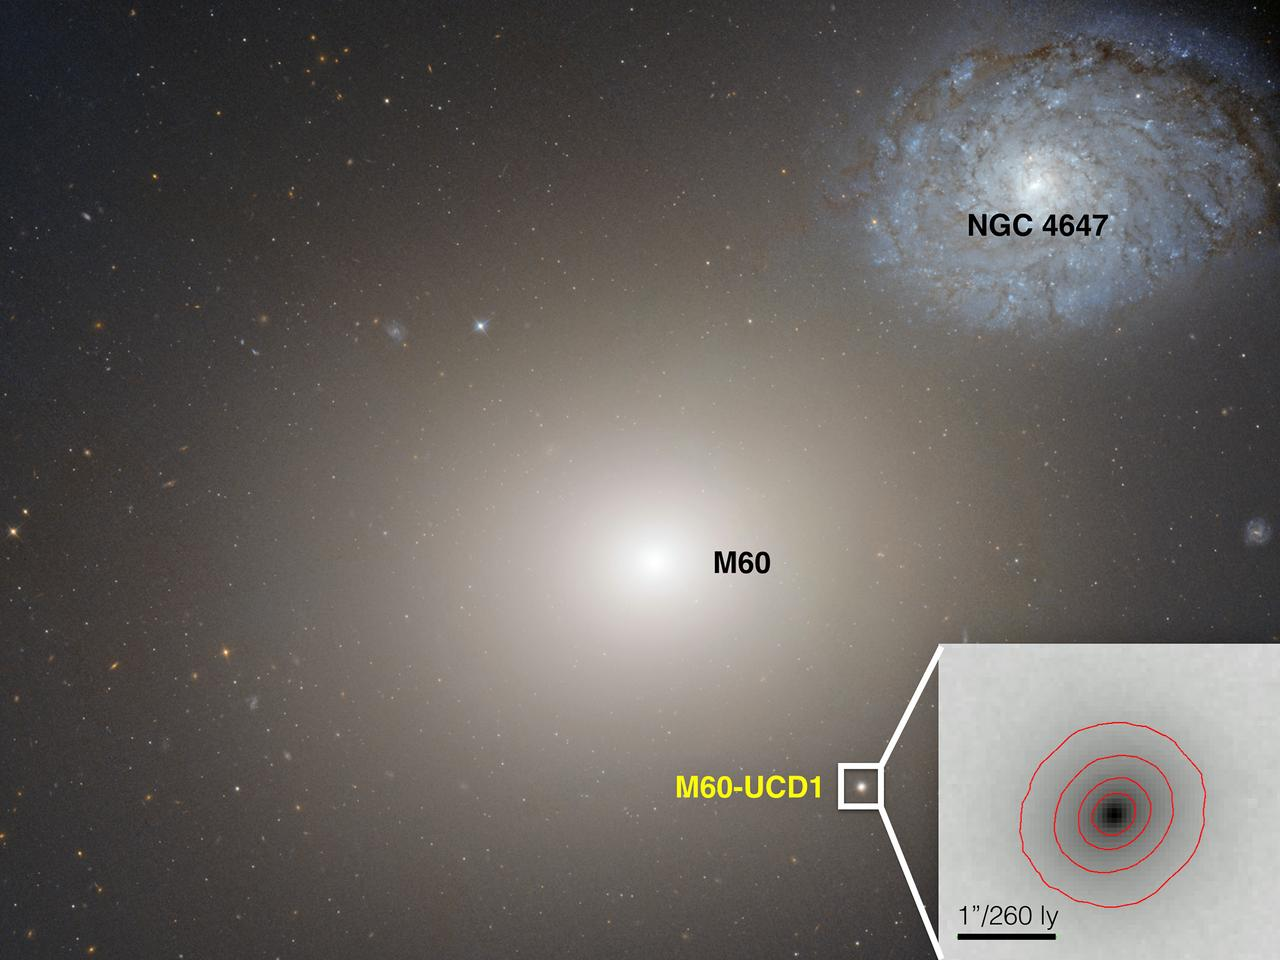 Dwarf galaxy M60-UCD1 in compostie with M60 (Image: NASA/Space Telescope Science Institute/European Space Agency)